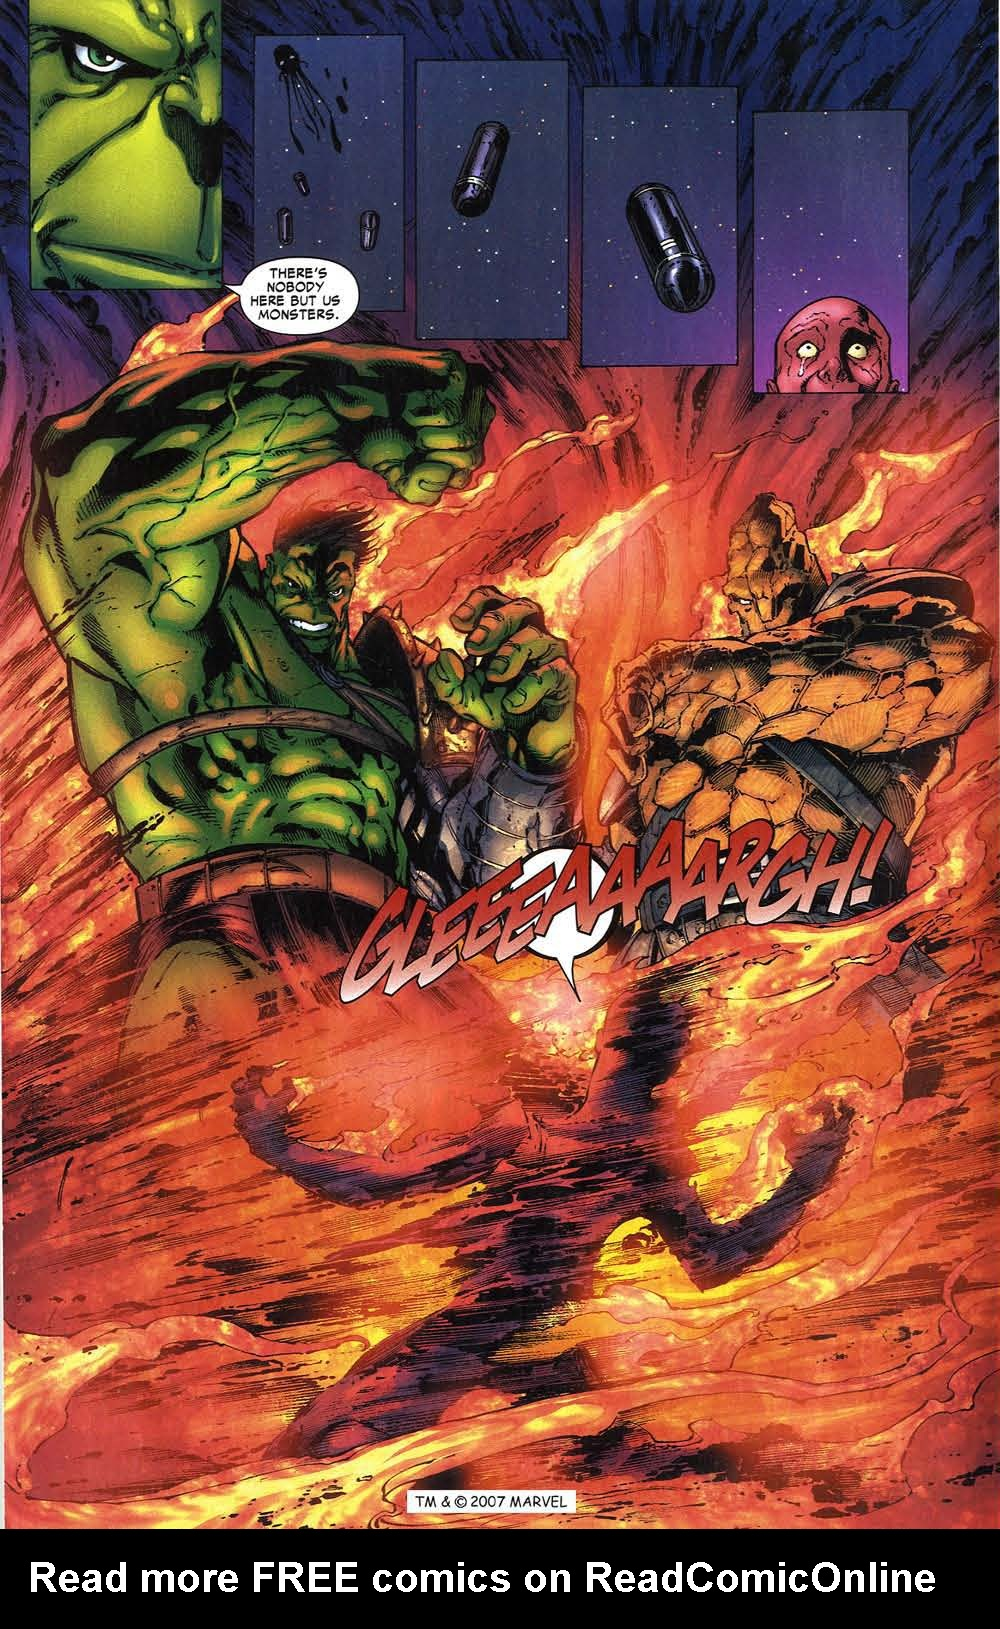 Read online The Incredible Hulk (2000) comic -  Issue #96 - 8